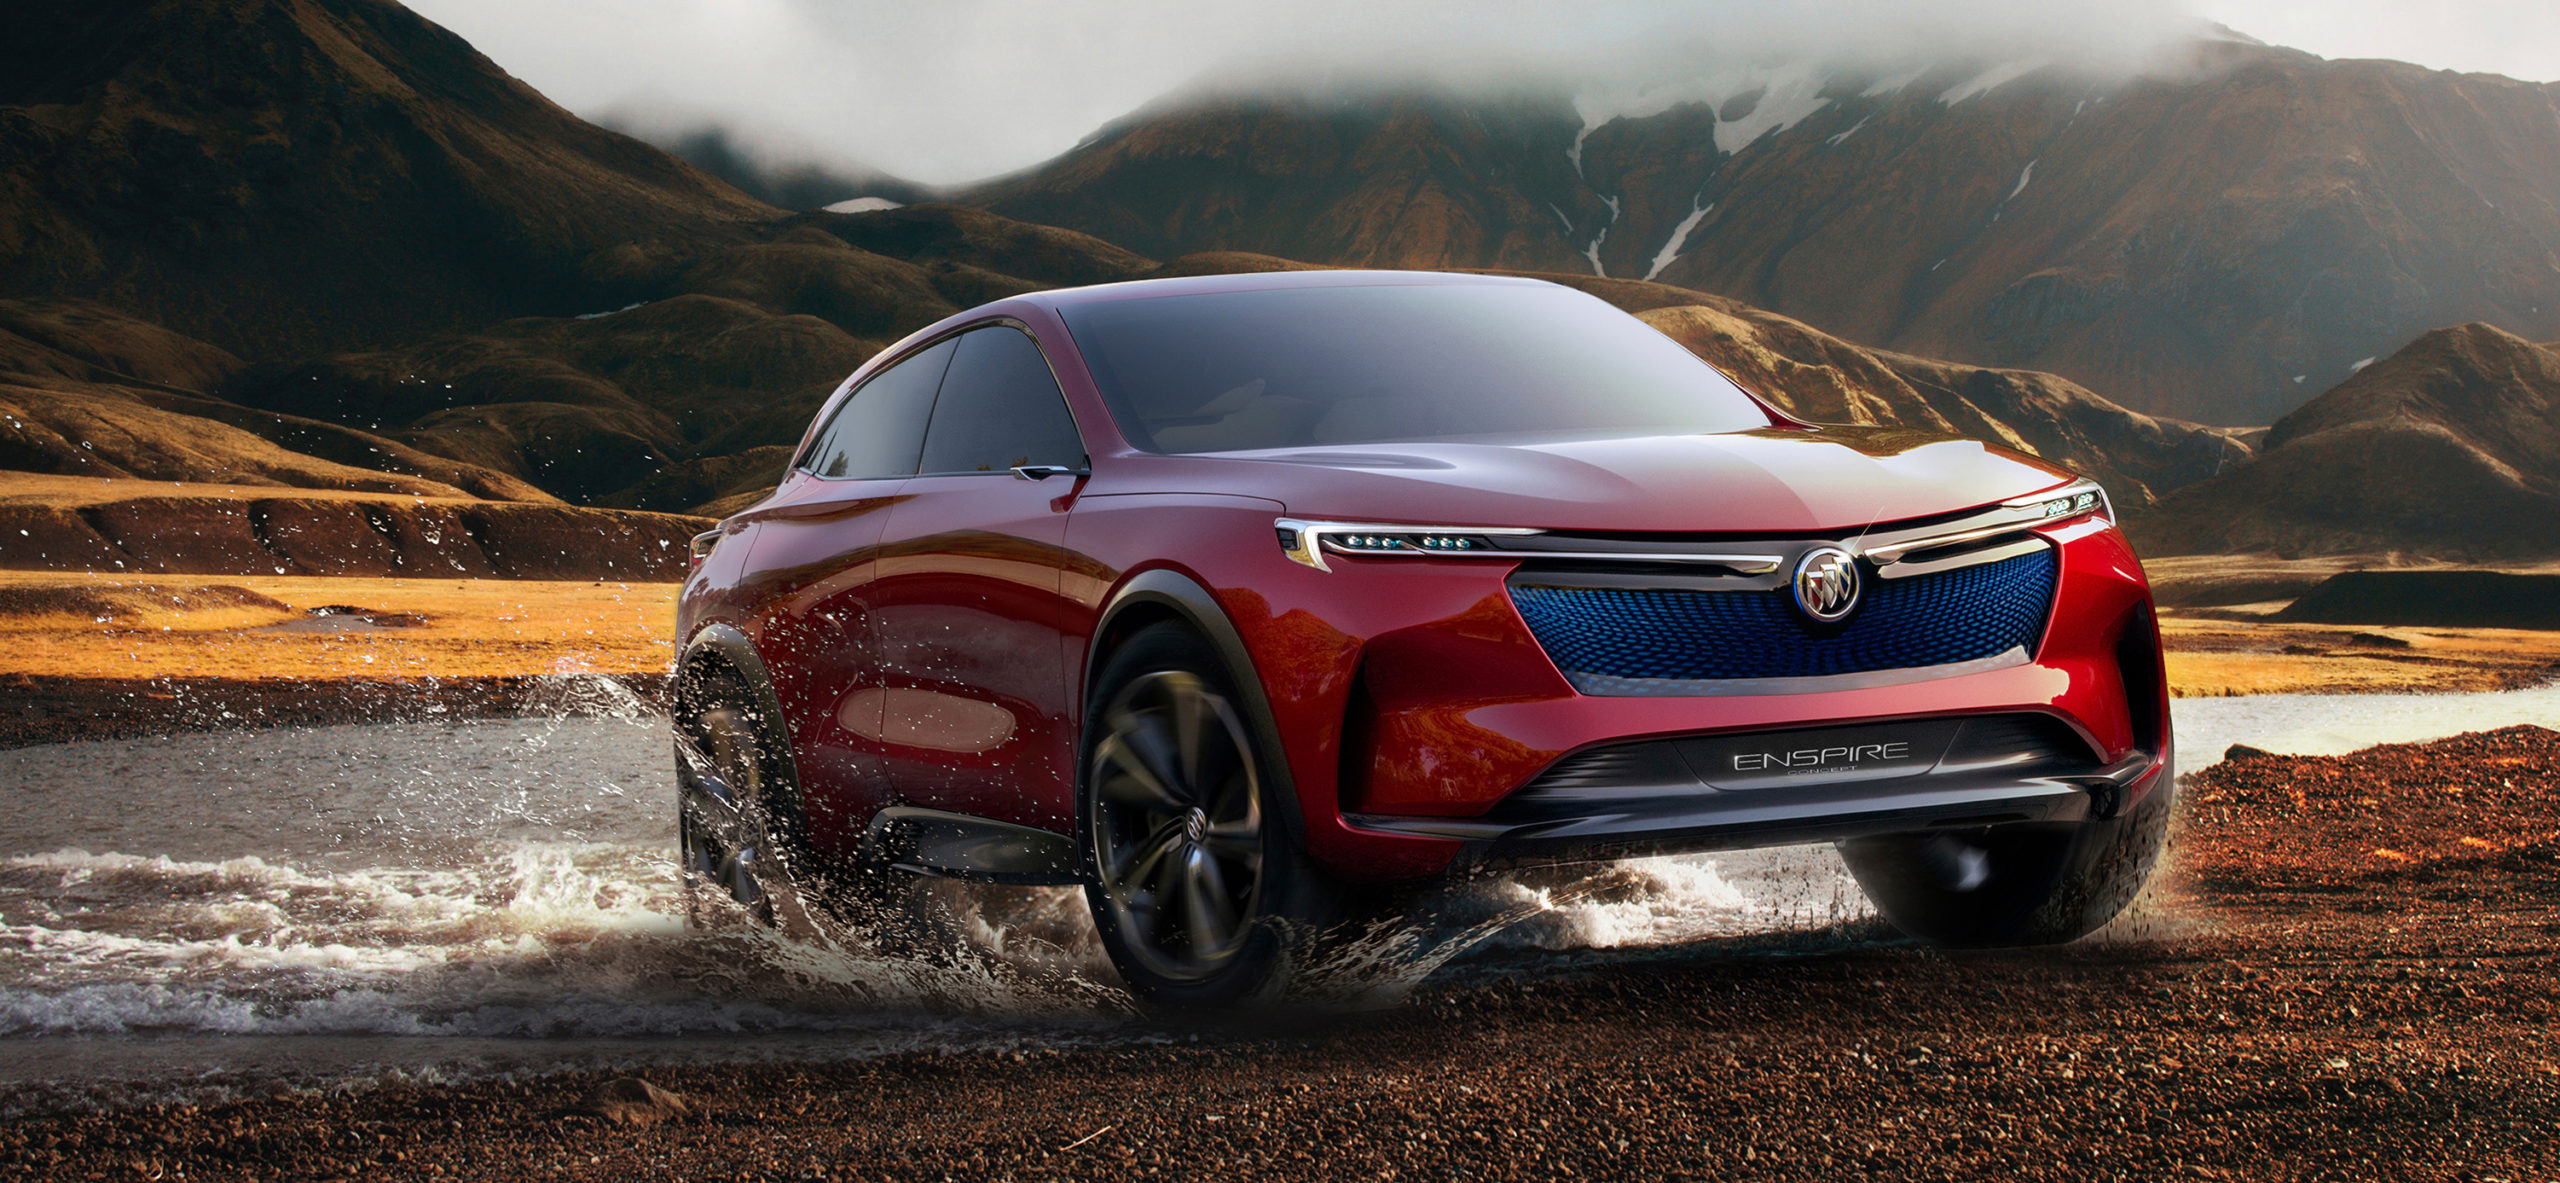 Photo of Buick Enspire all-electric concept SUV.